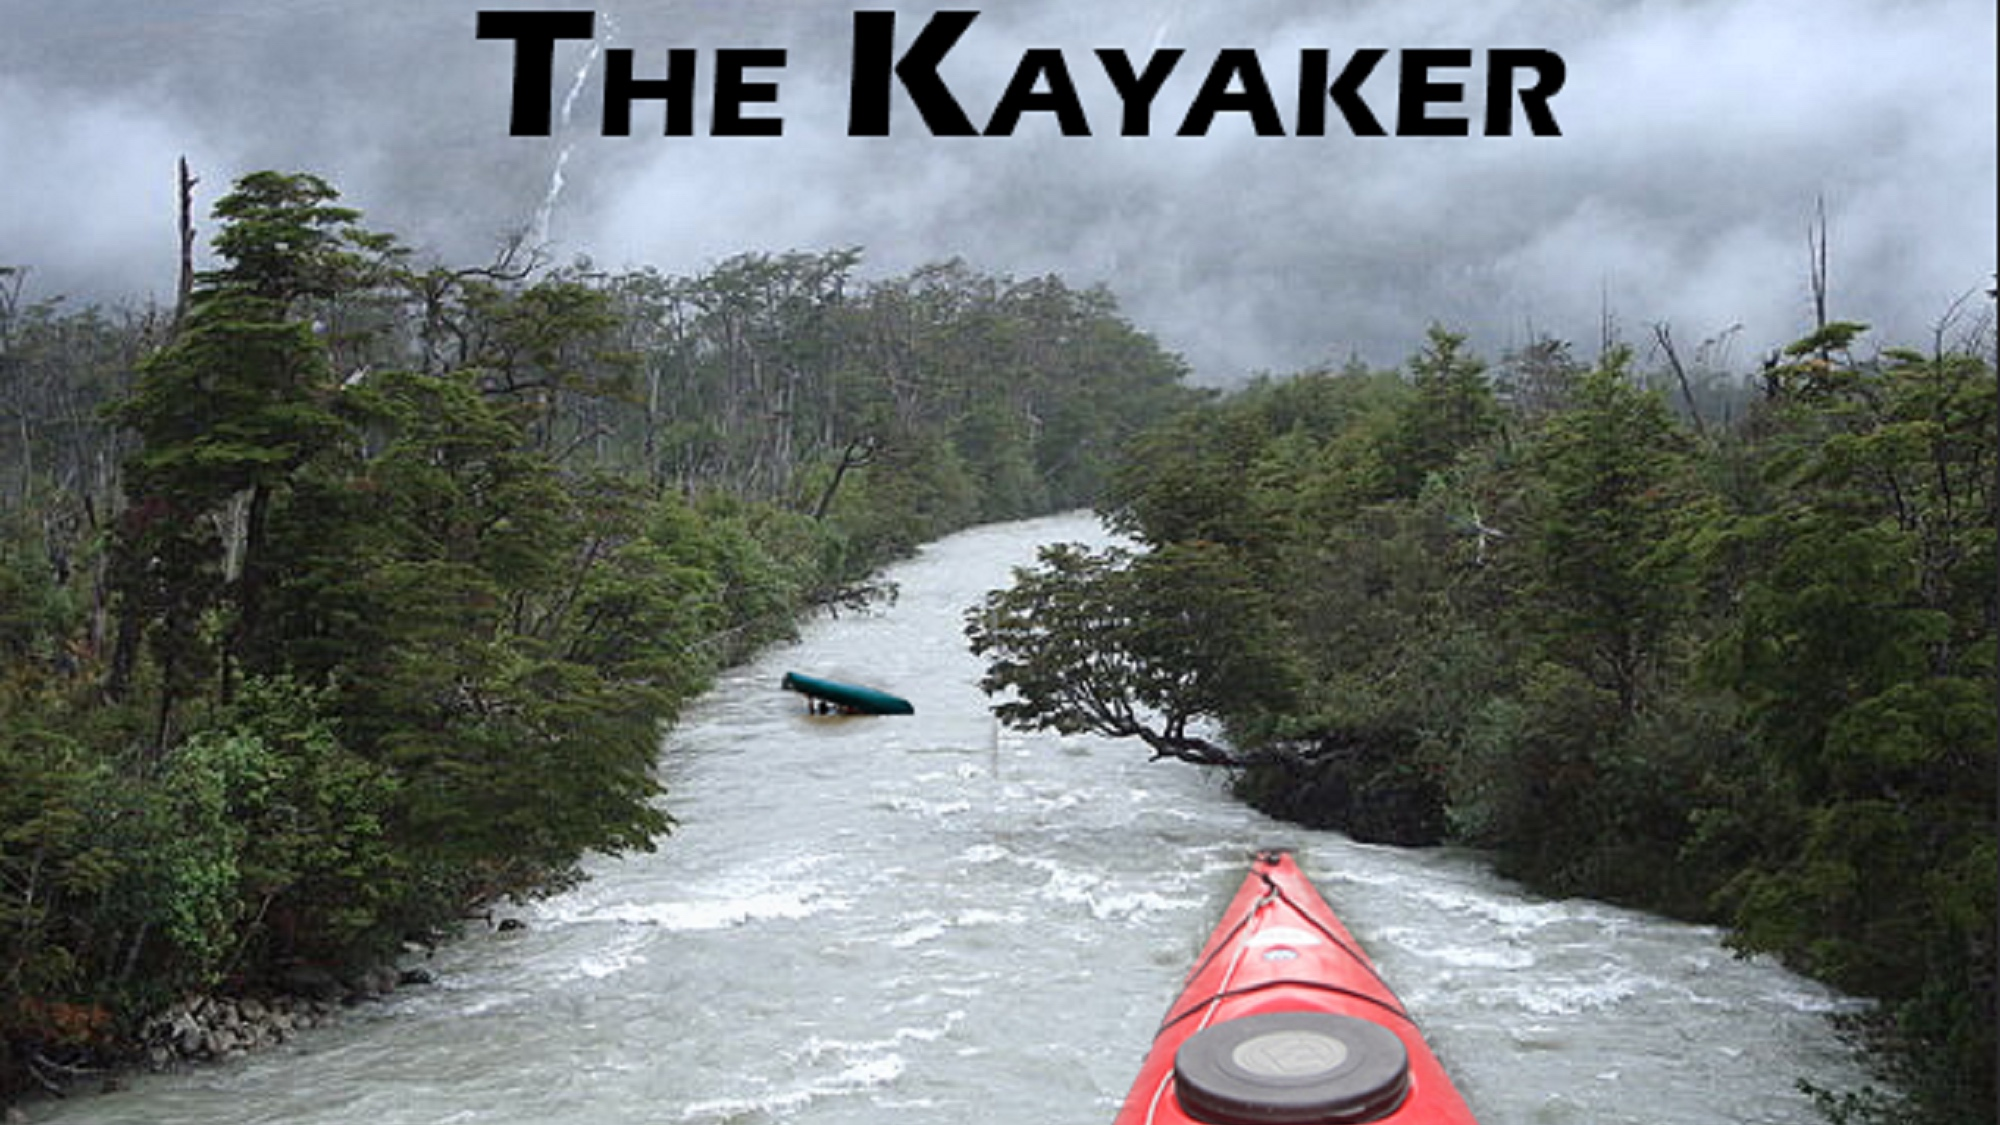 The Kayaker - Mystery shrouds the circumstances surrounding a man's death after he suspiciously vanishes on a kayaking trip. Click here to read.